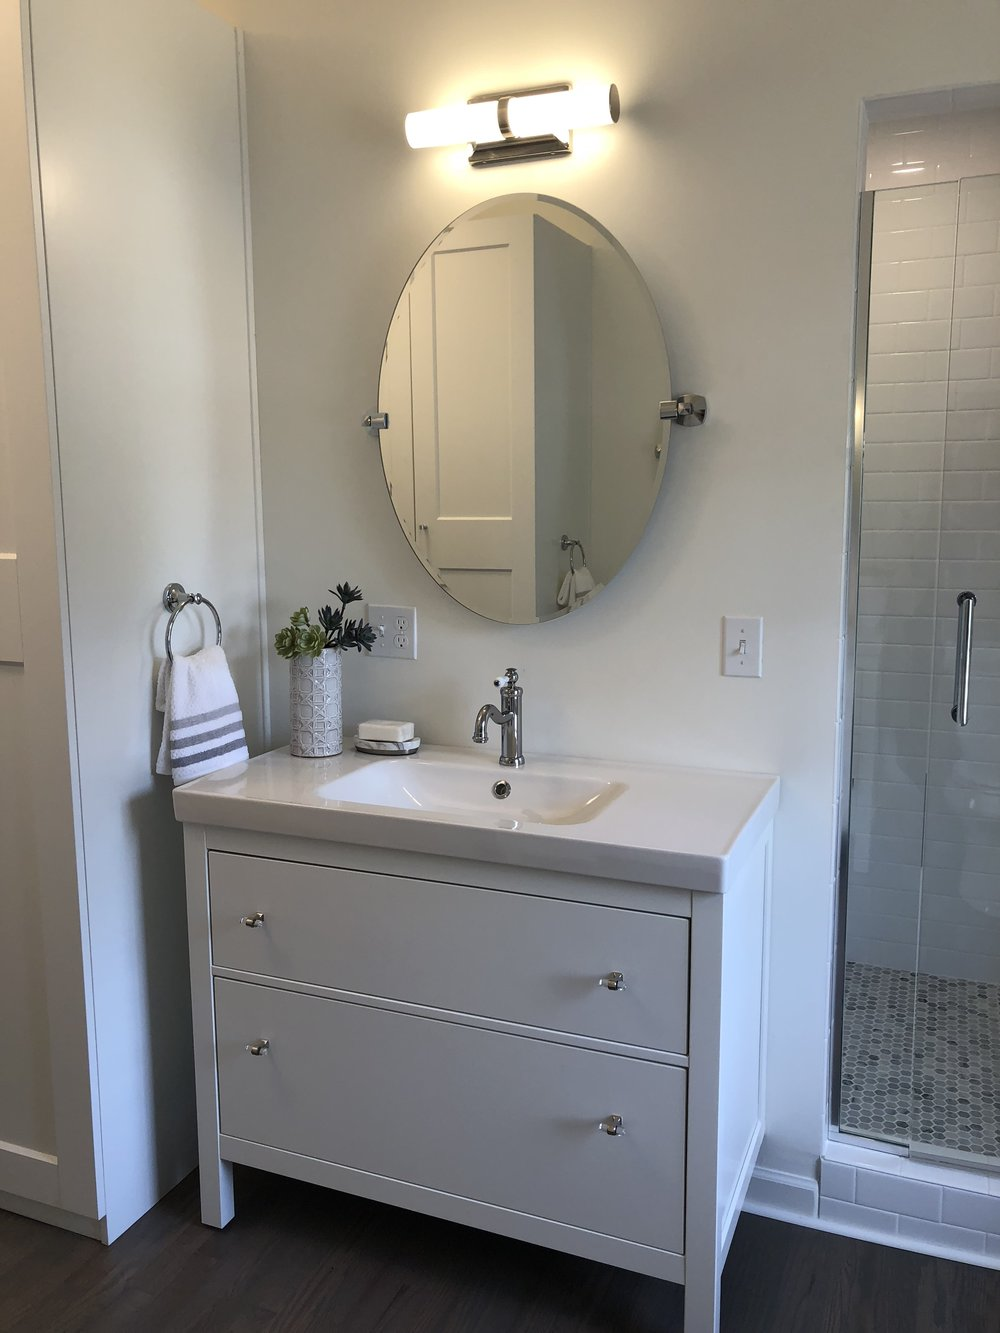 Instead of one long vanity, we installed twin vanities with lots of extra storage.